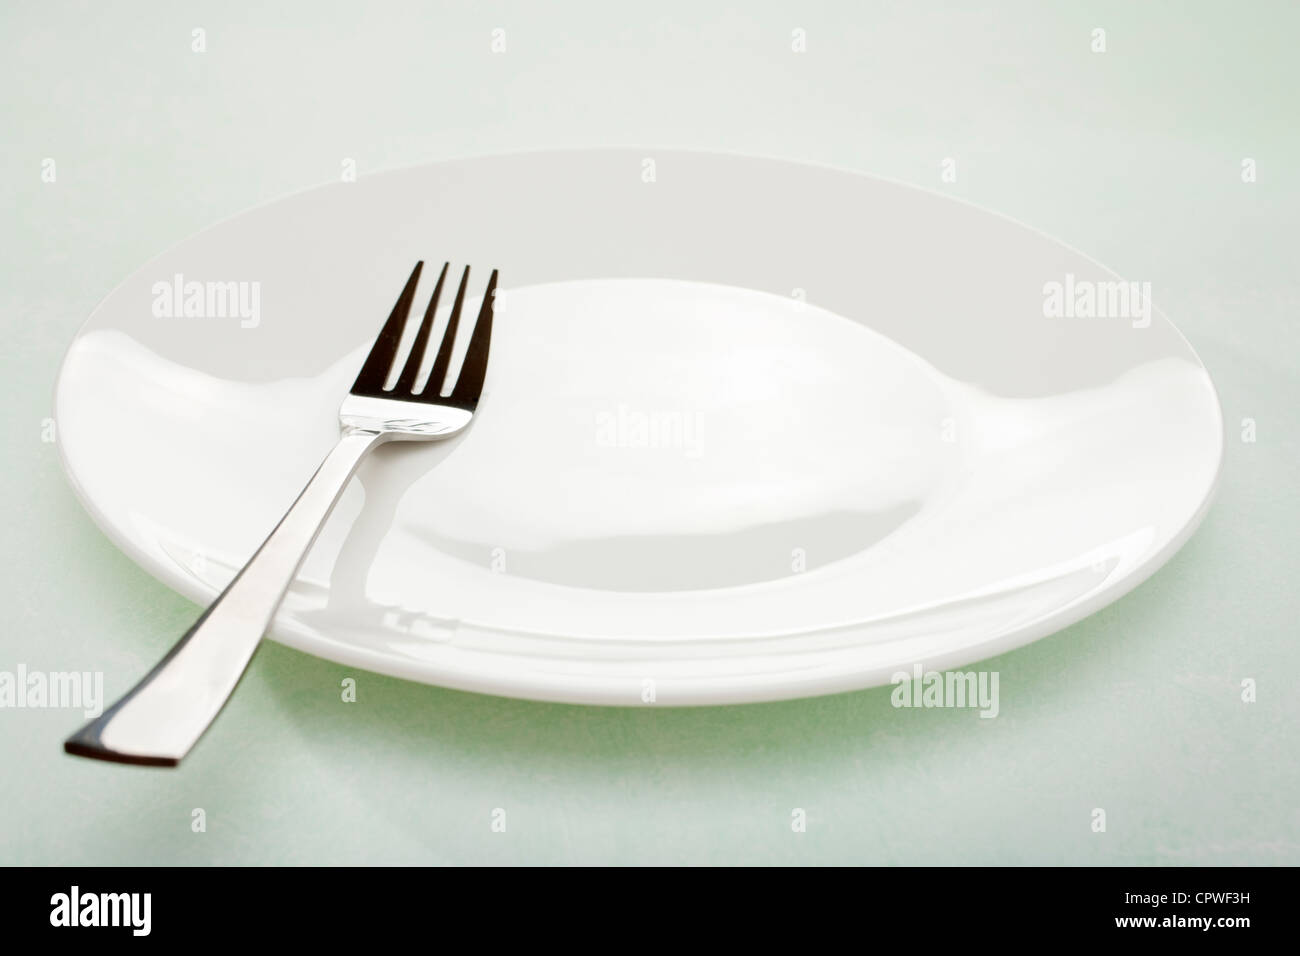 White plate and modern fork on simple plain green background. - Stock Image